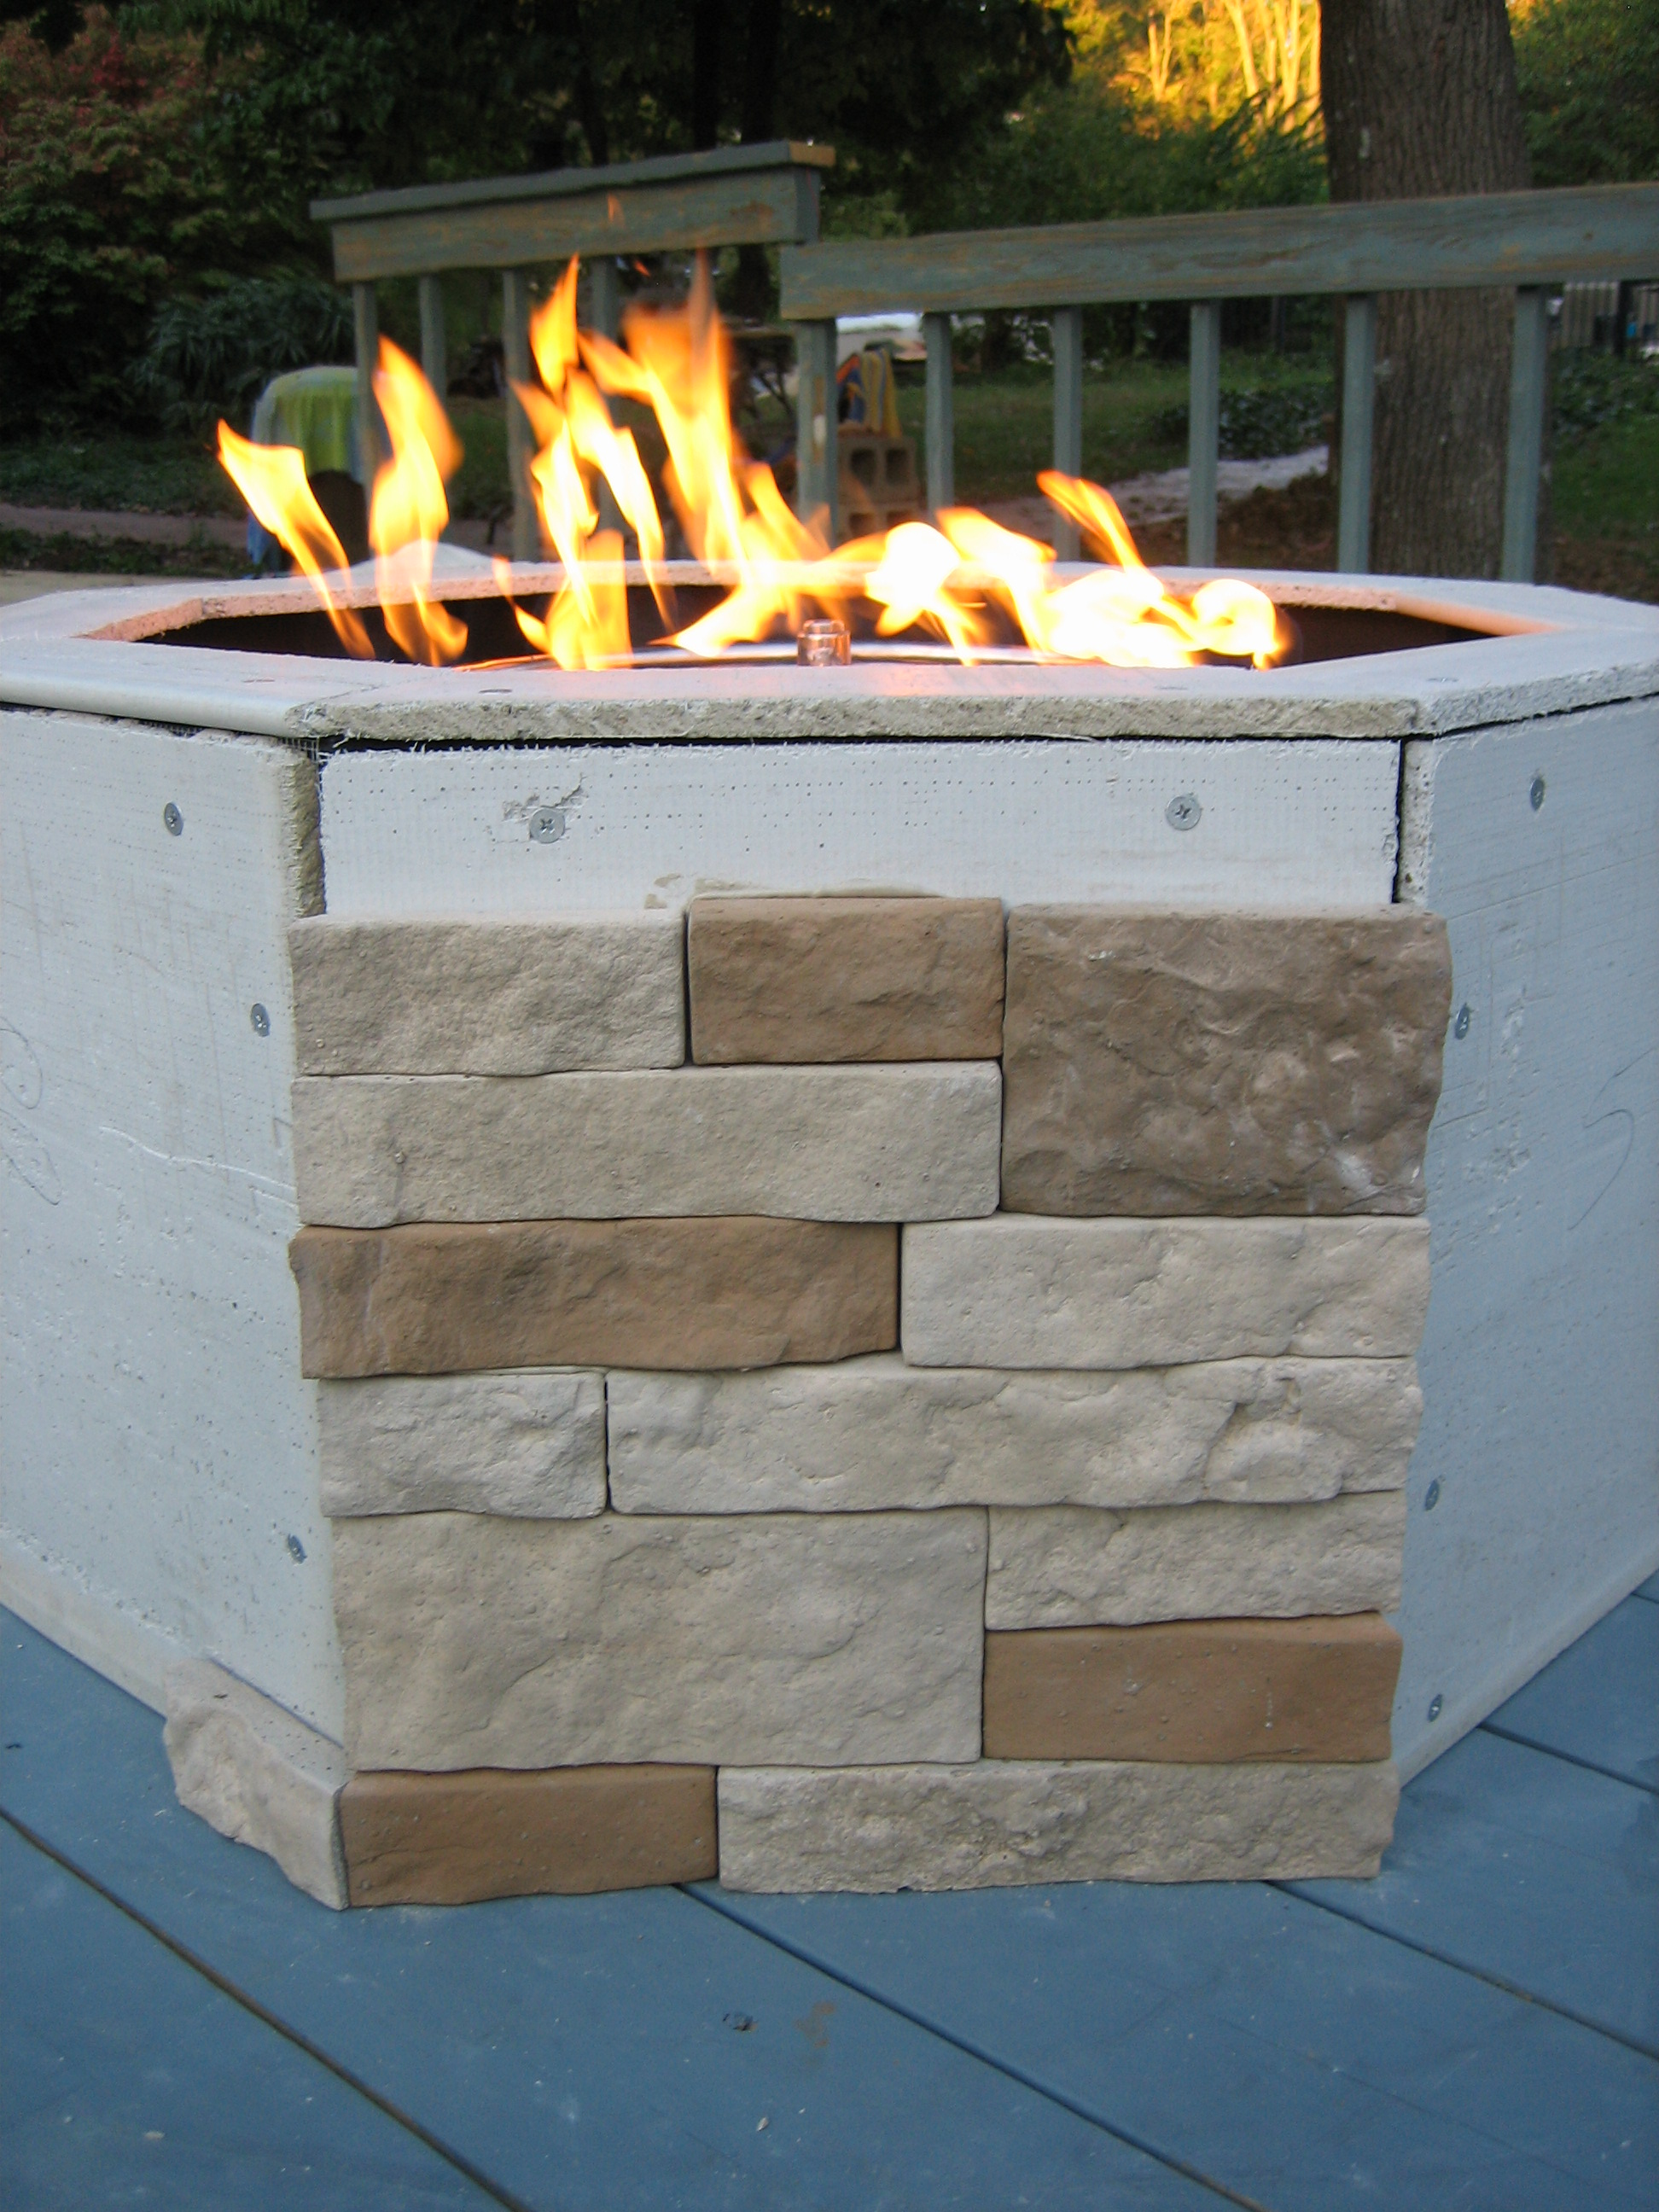 Building the firepit welcome to corny 39 s world - Airstone exterior adhesive alternative ...